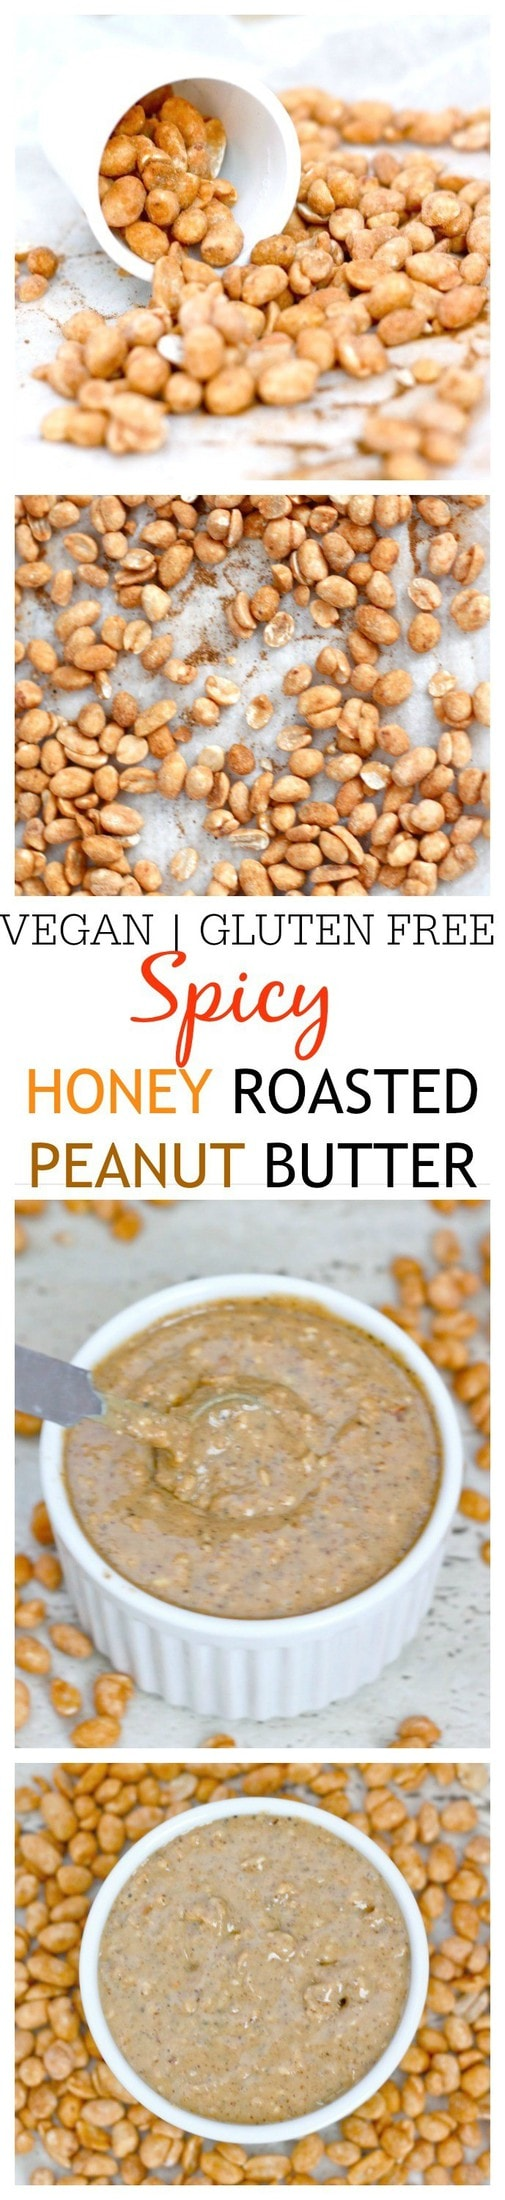 Spicy Honey Roasted Peanut Butter- Just 5 minutes and a high speed blender is all you'll need to whip up the BEST tasting peanut butter ever- Spicy, sweet, salty- It's a texture lover's dream which is also gluten free, refined sugar free and a vegan option!  @thebigmansworld -thebigmansworld.com